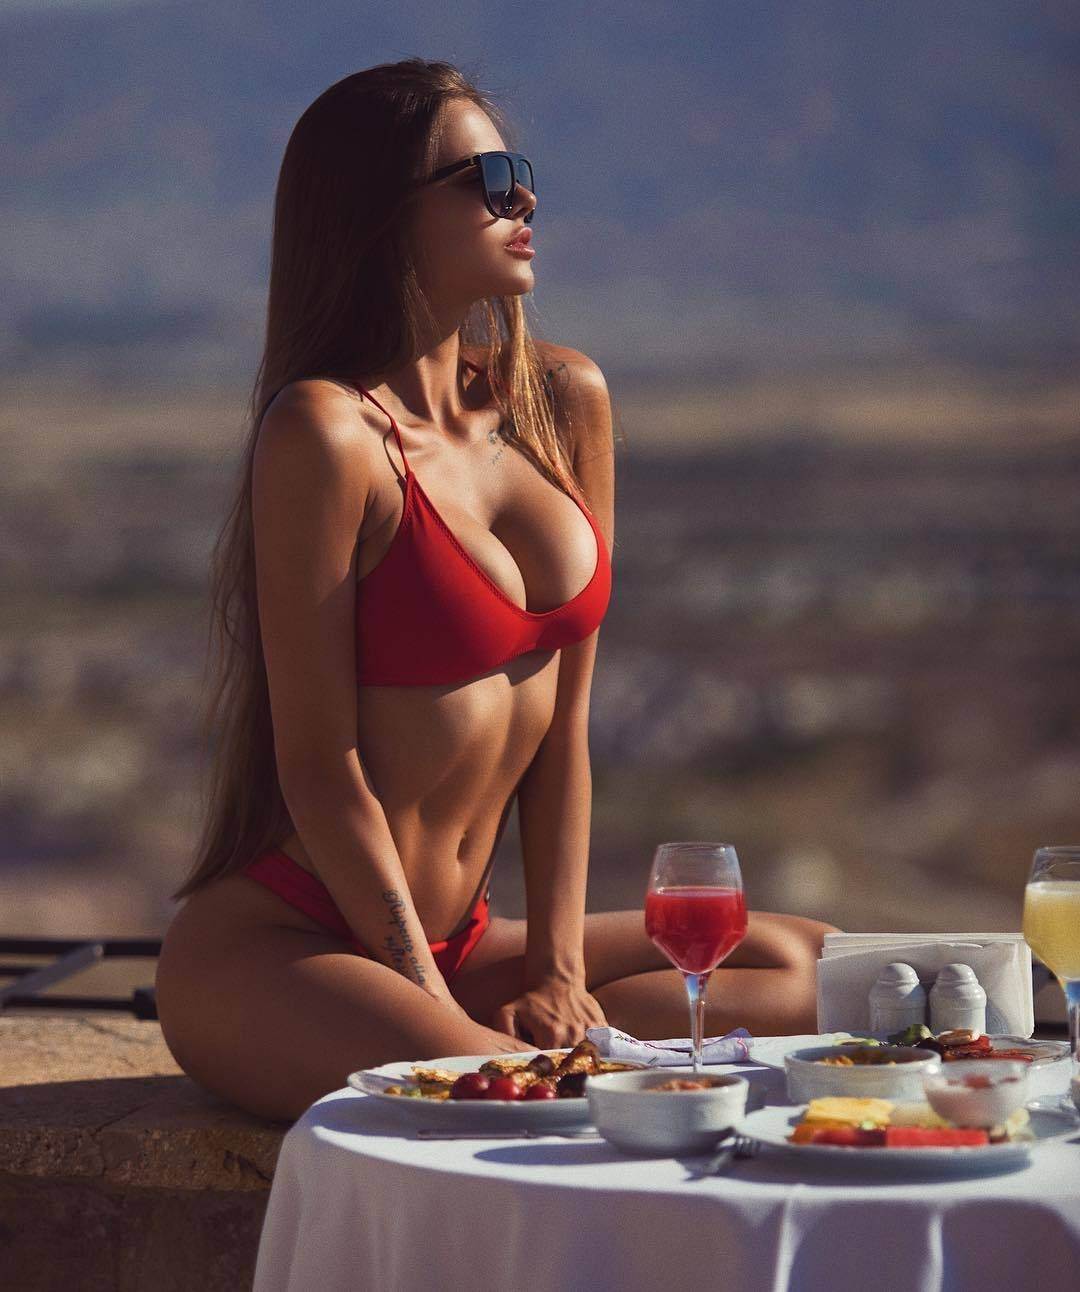 Cleavage Viktoria Odintcova nude photos 2019